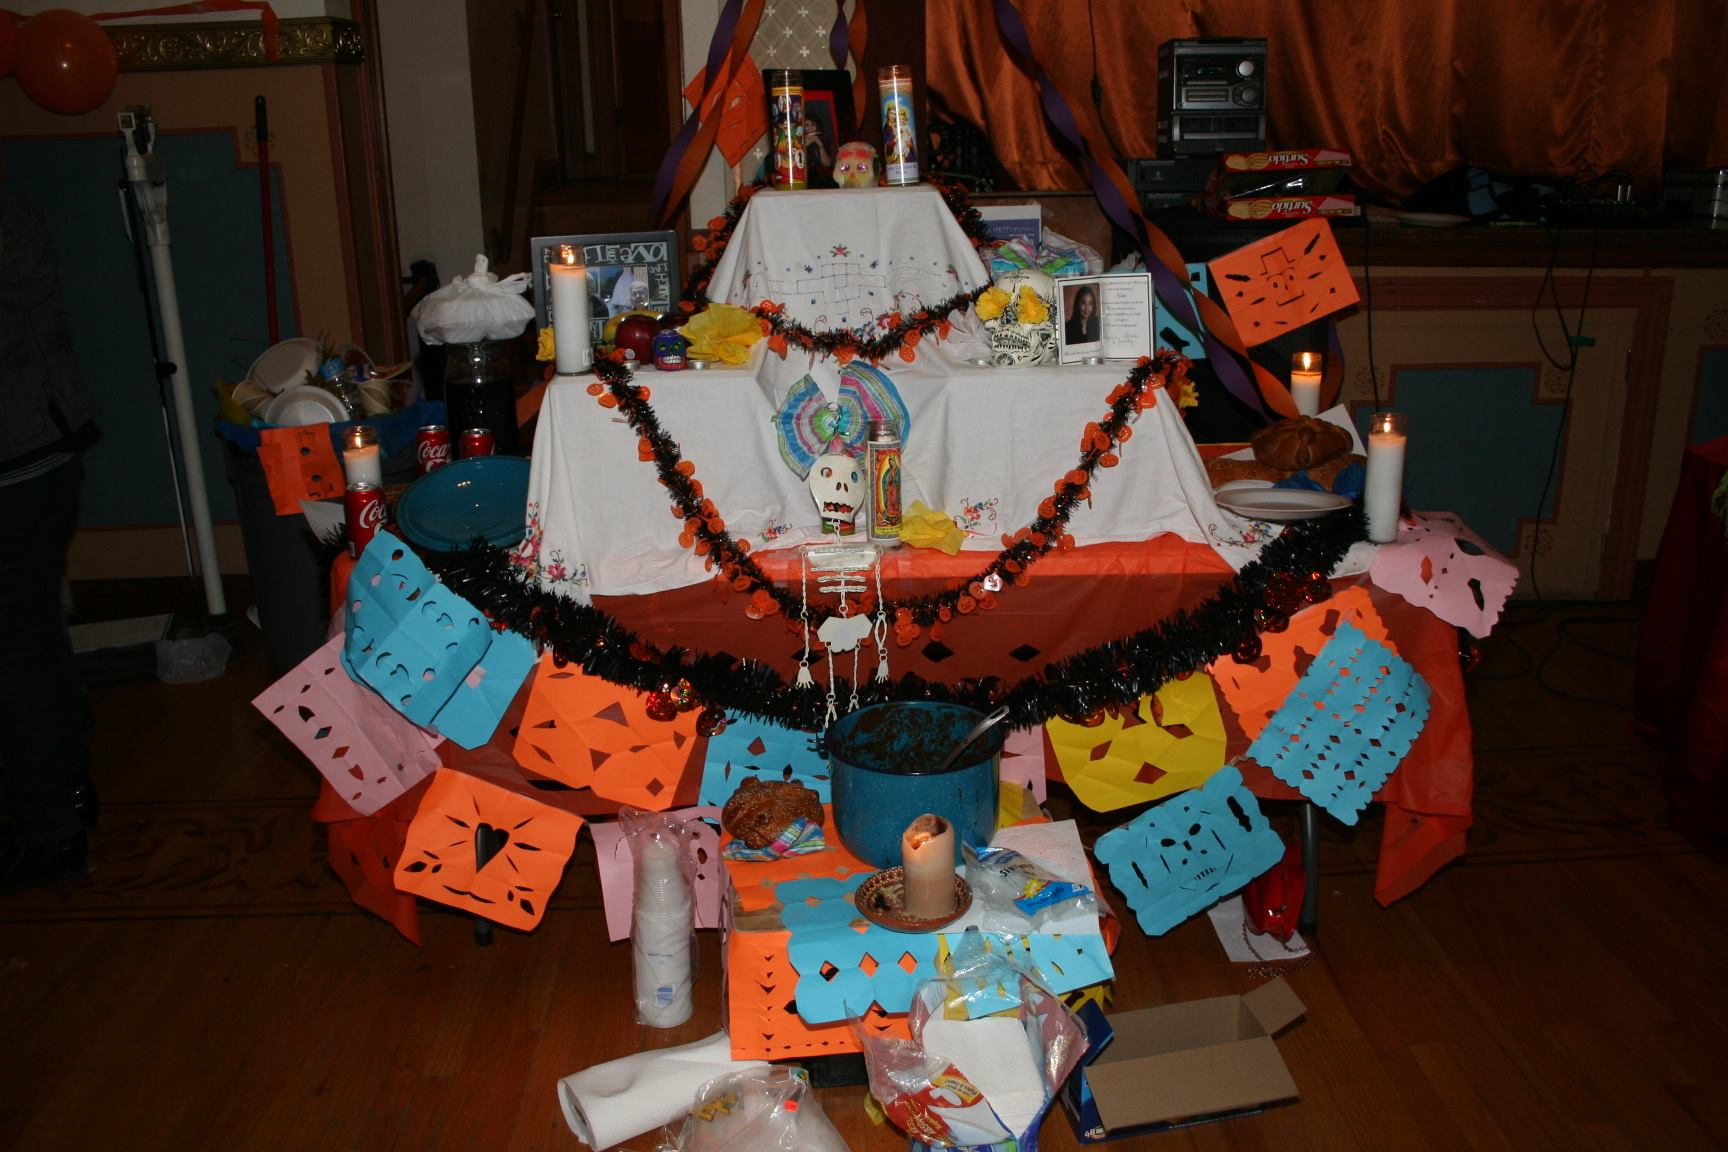 why do we celebrate the day of the dead iexcl escucha listen but after a few years we stopped in this country not many people celebrate the day of the dead the tradition has changed